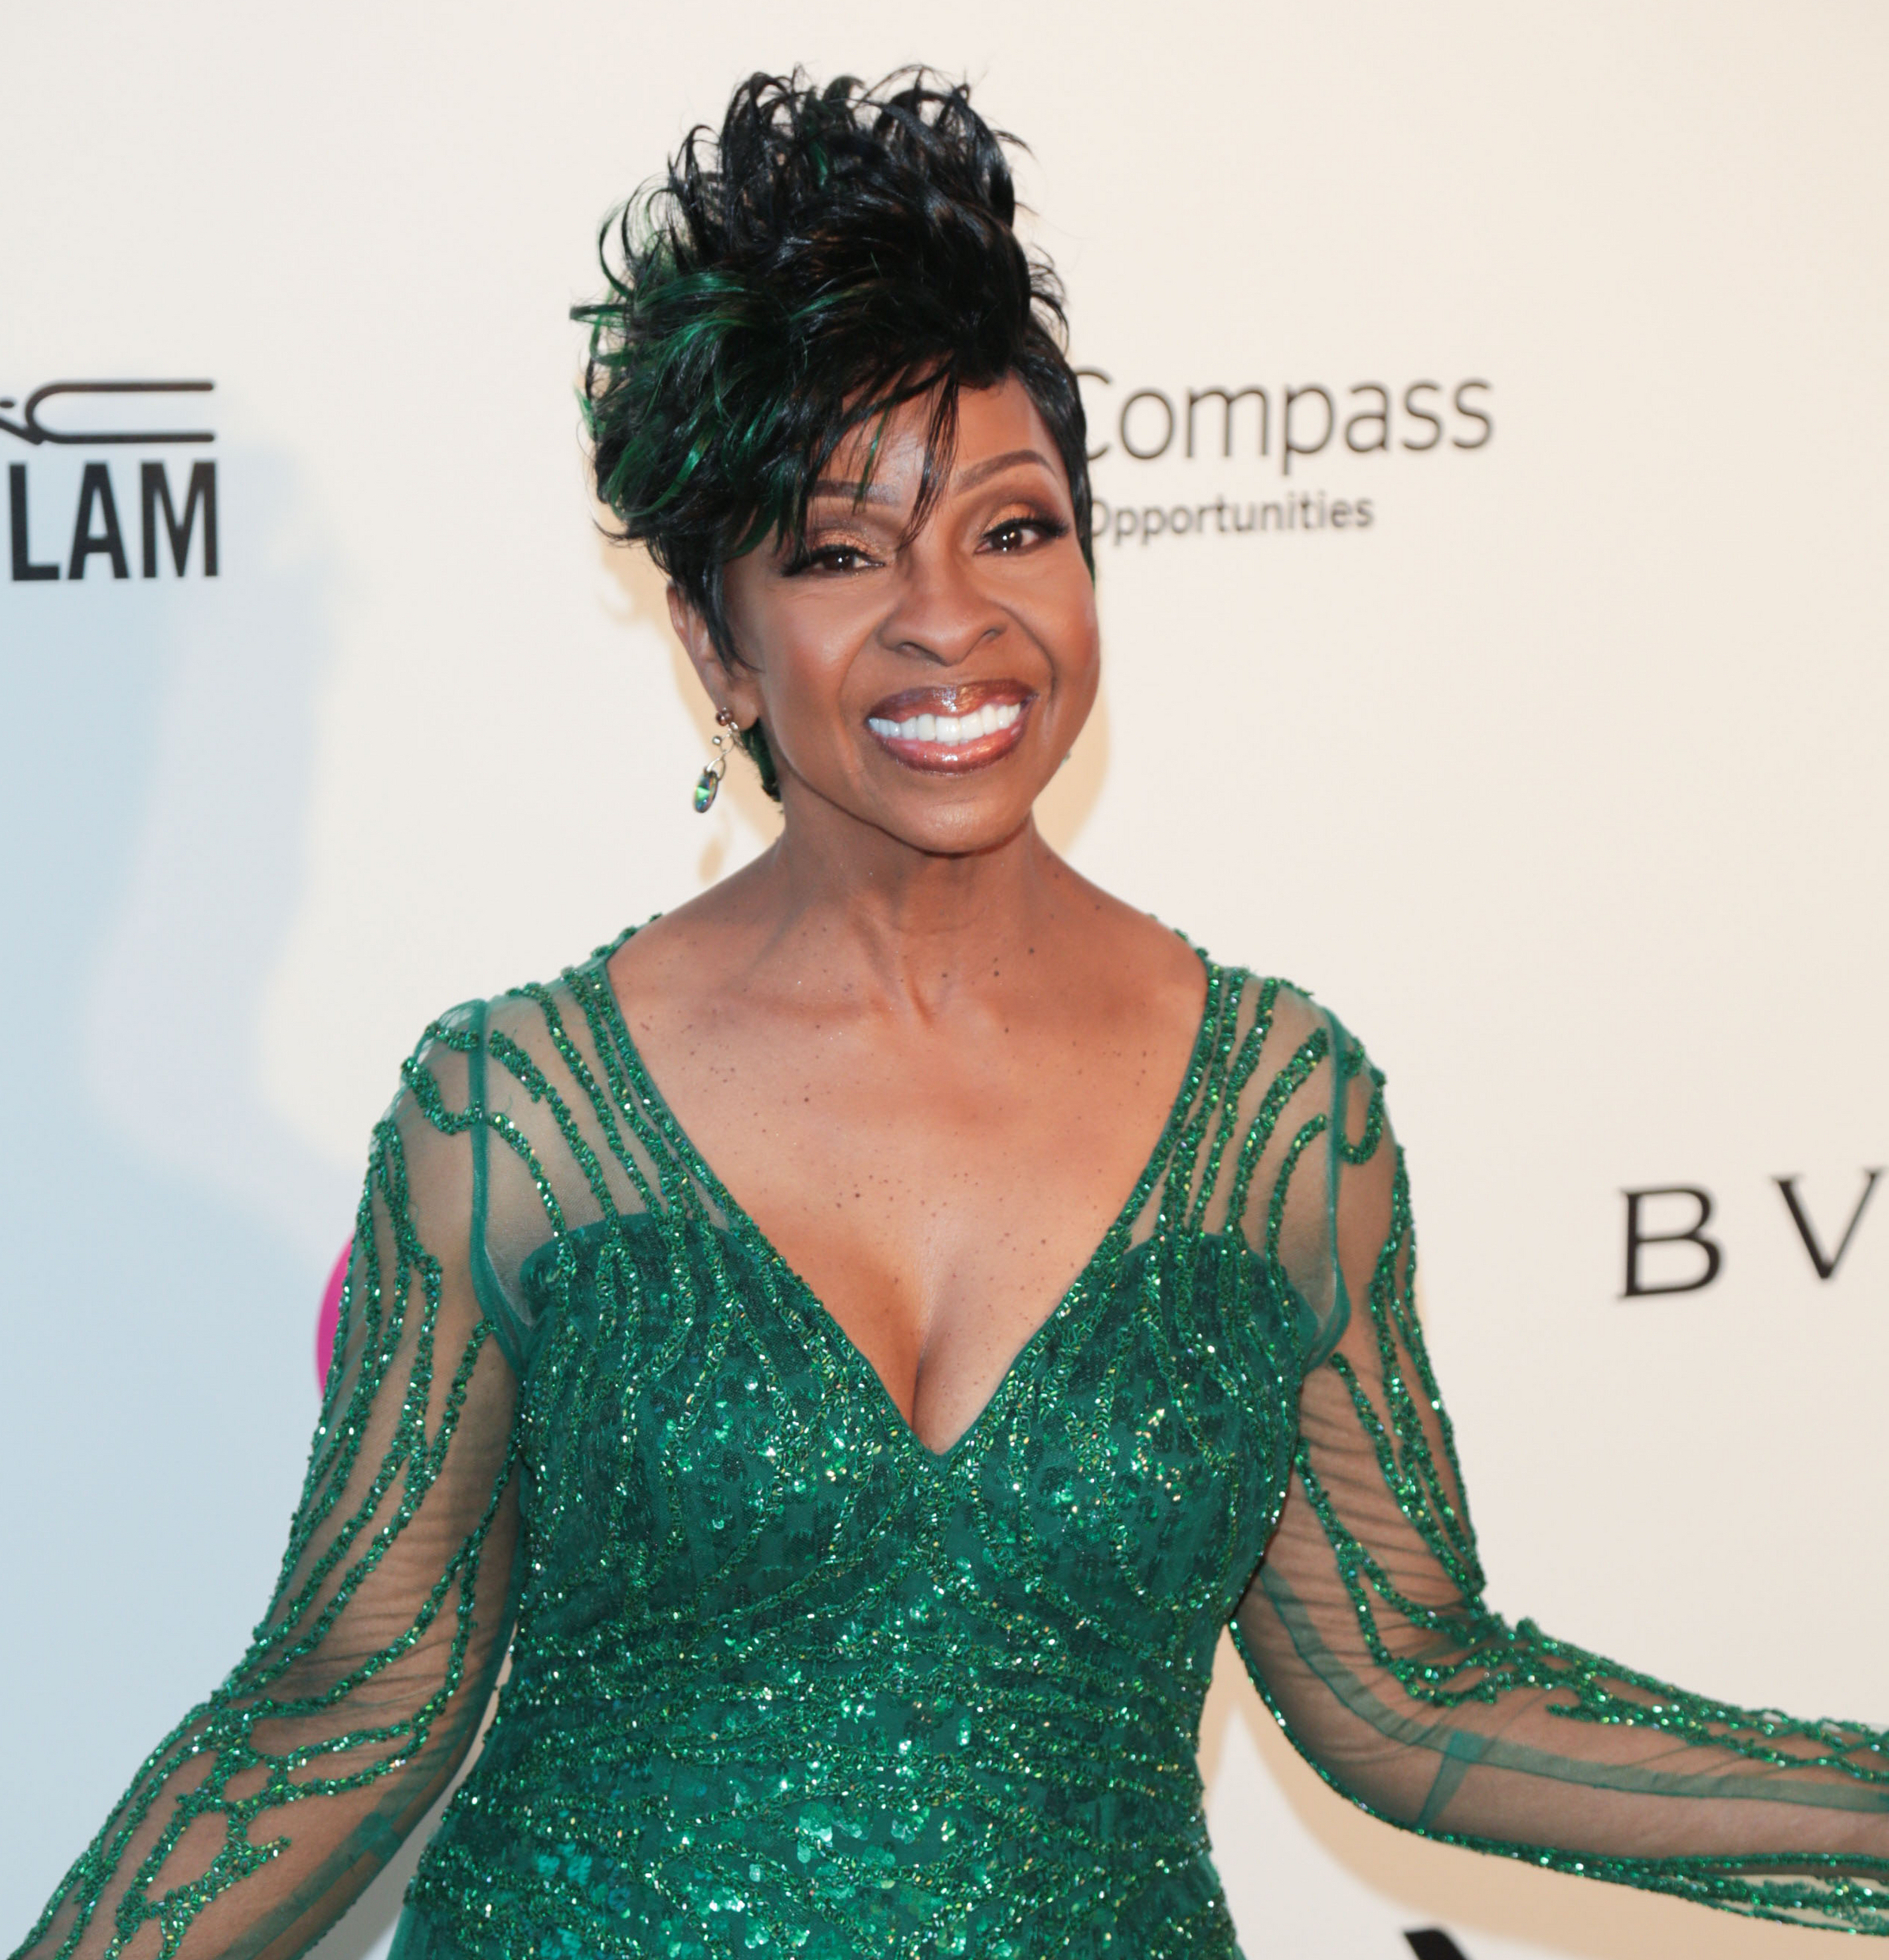 Gladys Knight Provides The Receipts On Plastic Surgery Rumors